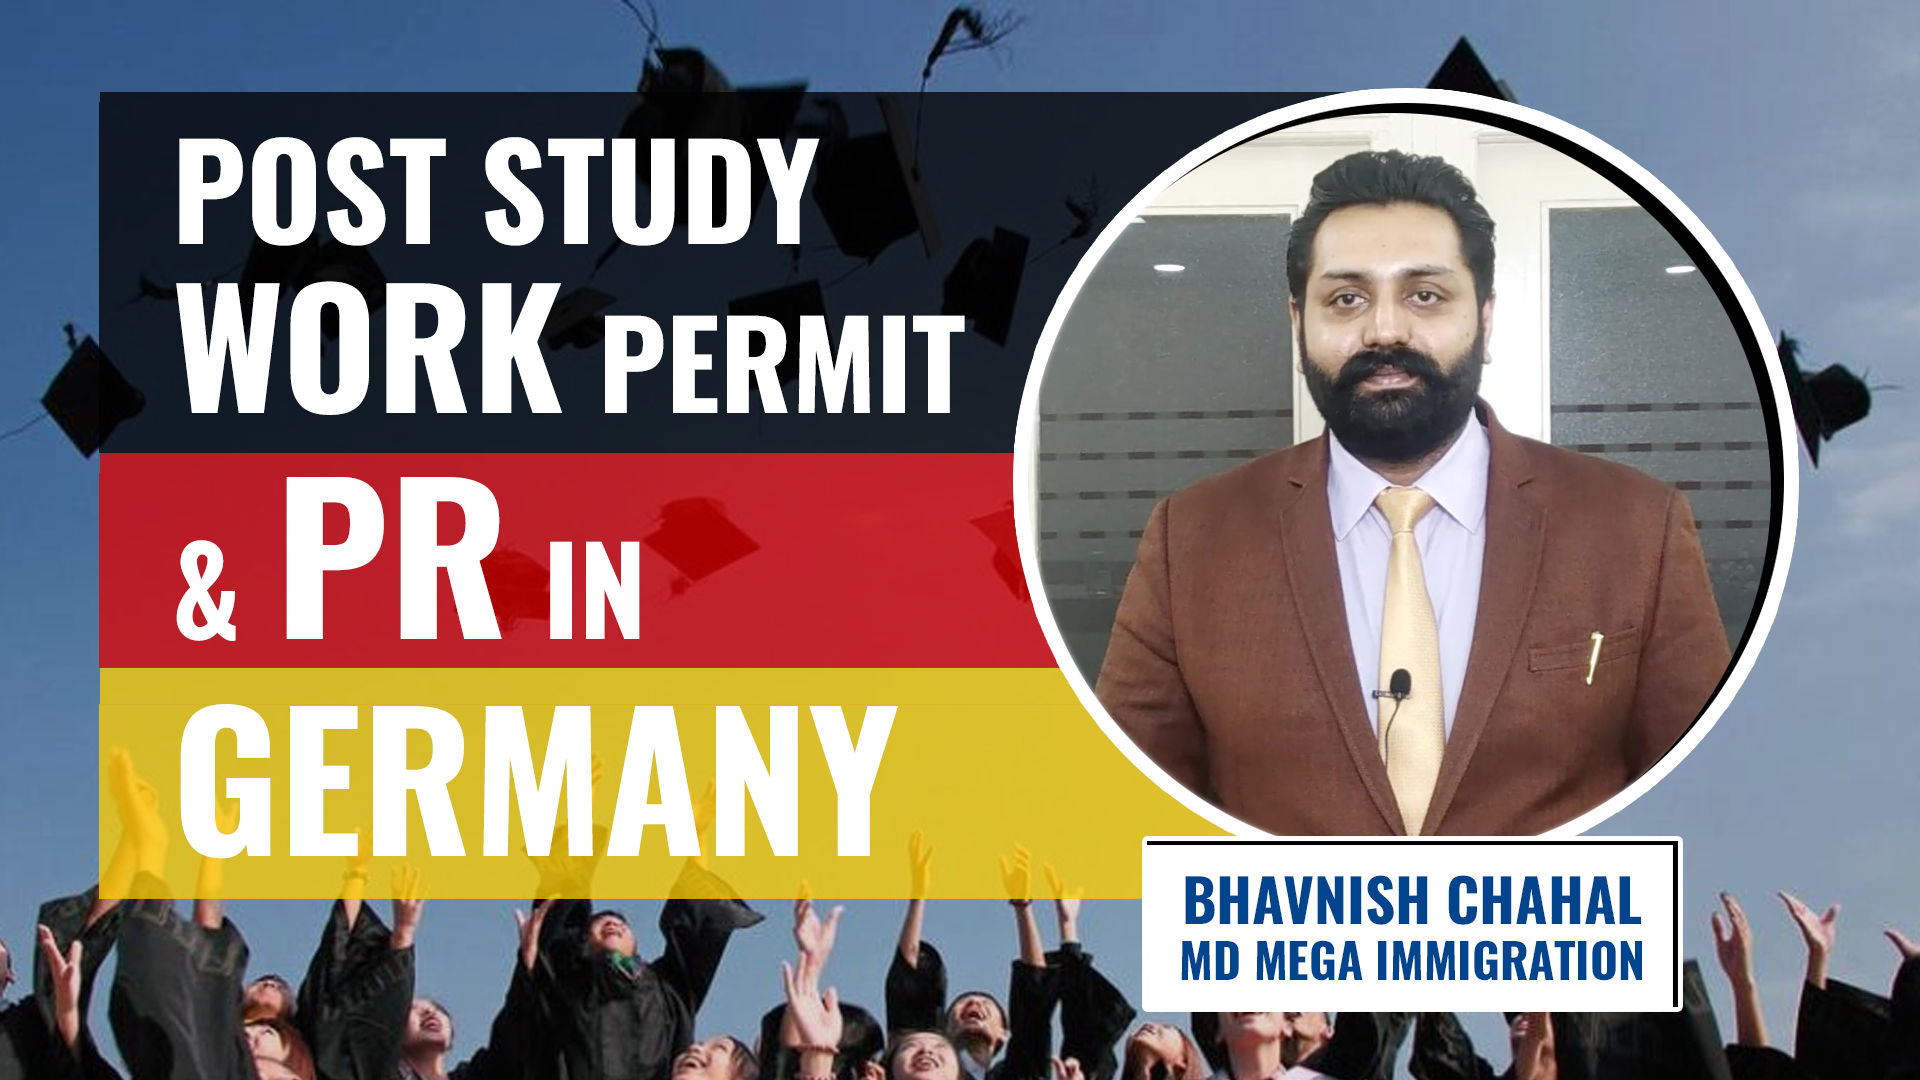 596ba5ae25dc51c9c17bab8effa68c5c - How To Get A Job In Germany After Masters